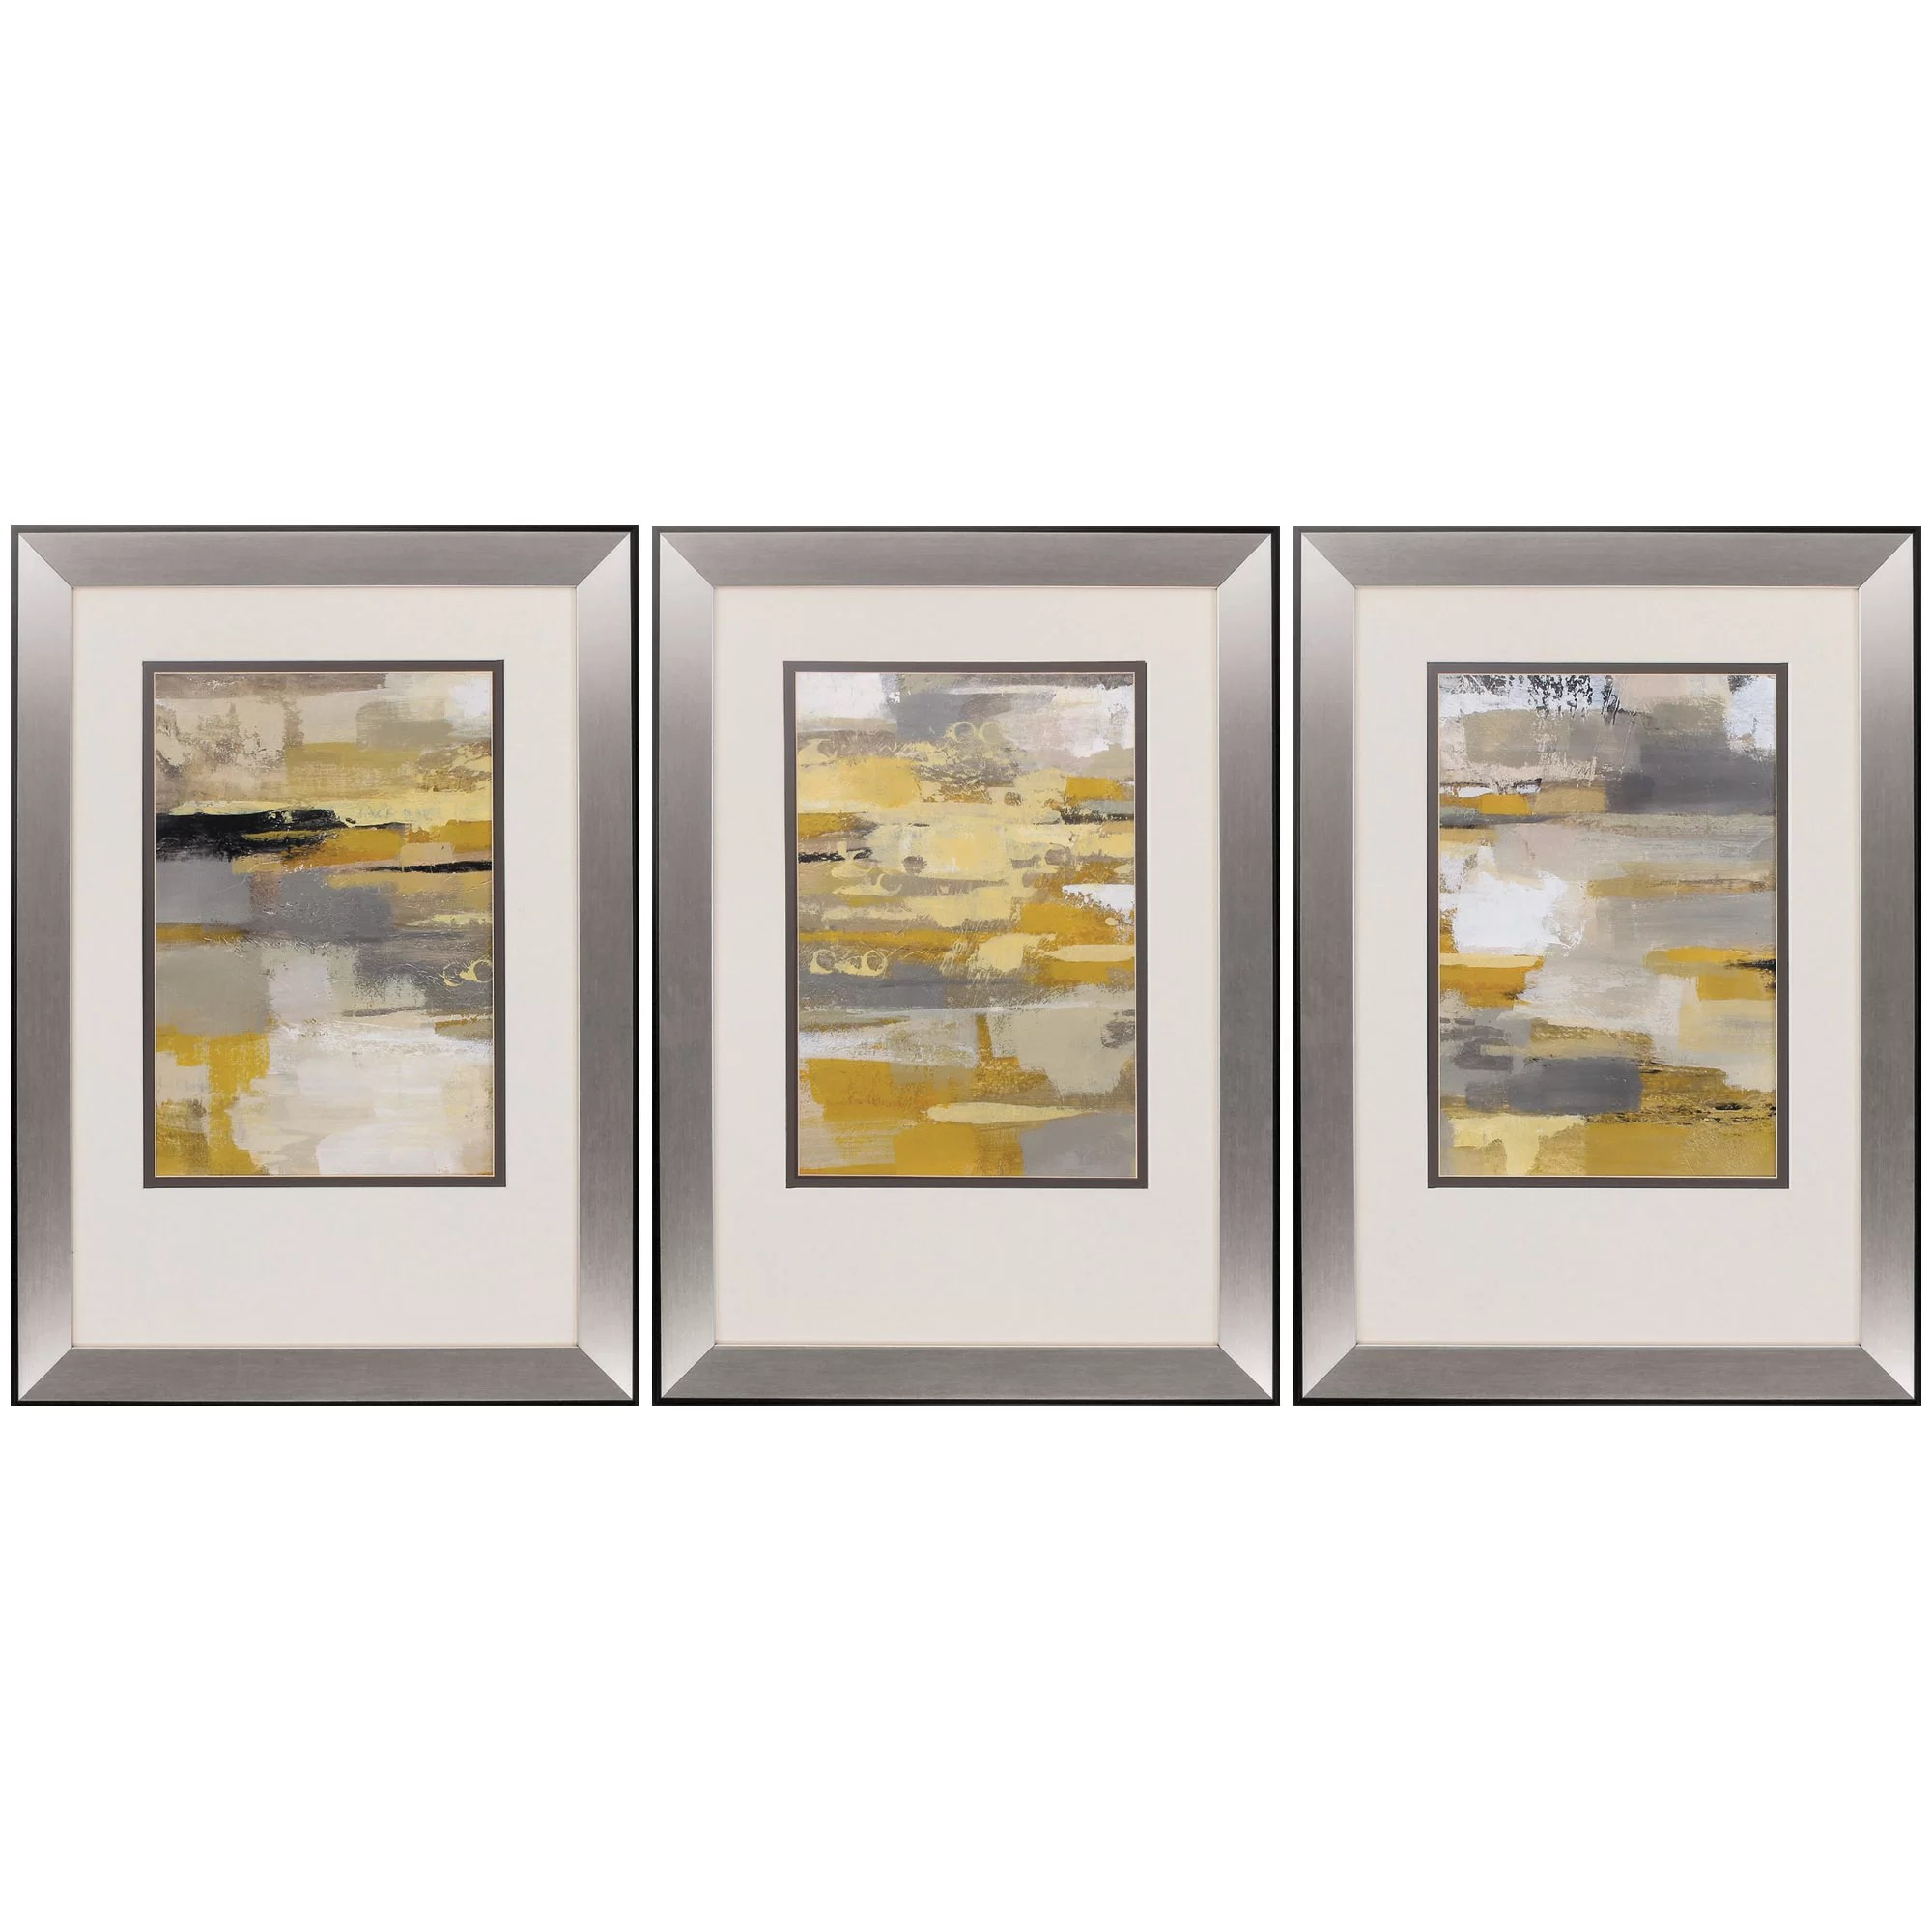 Framed Wall Art Sets Of 3 Propac Images Urban Walkway 3 Piece Framed Graphic Art Set